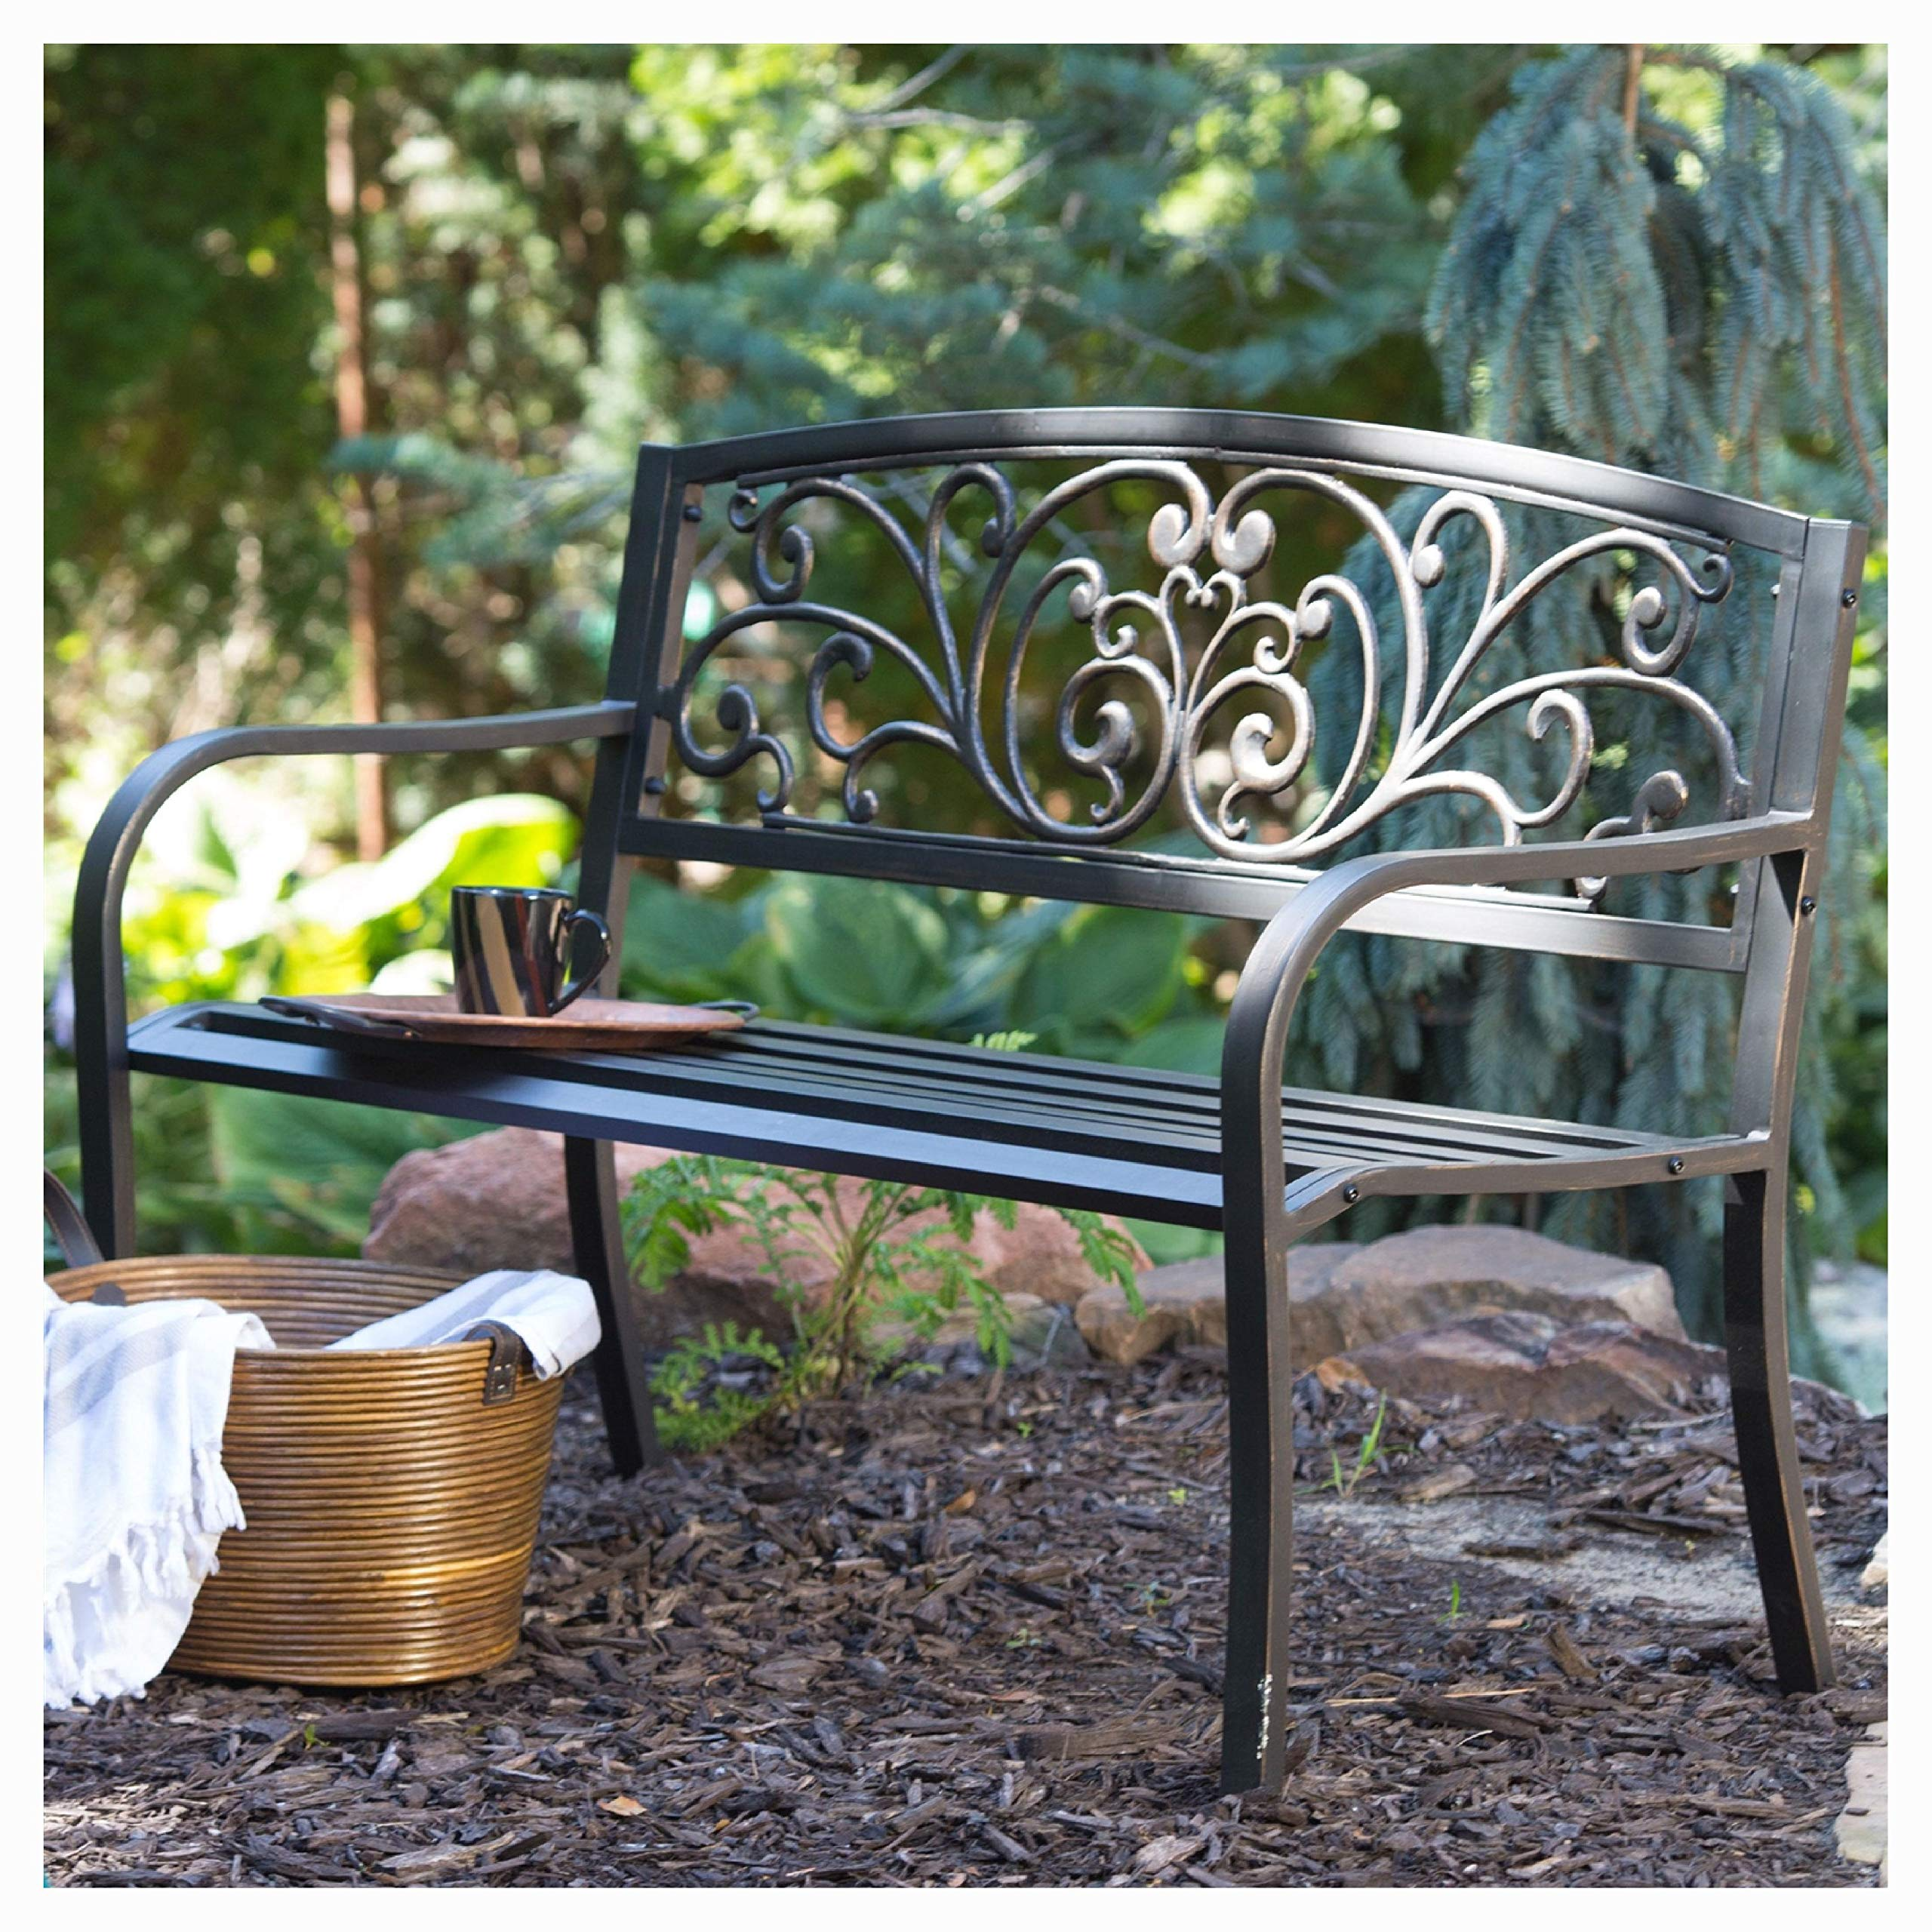 Garden Benches, Curved Metal Garden Bench with Heart Pattern in Black Antique Bronze Finish by HEATAPPLY